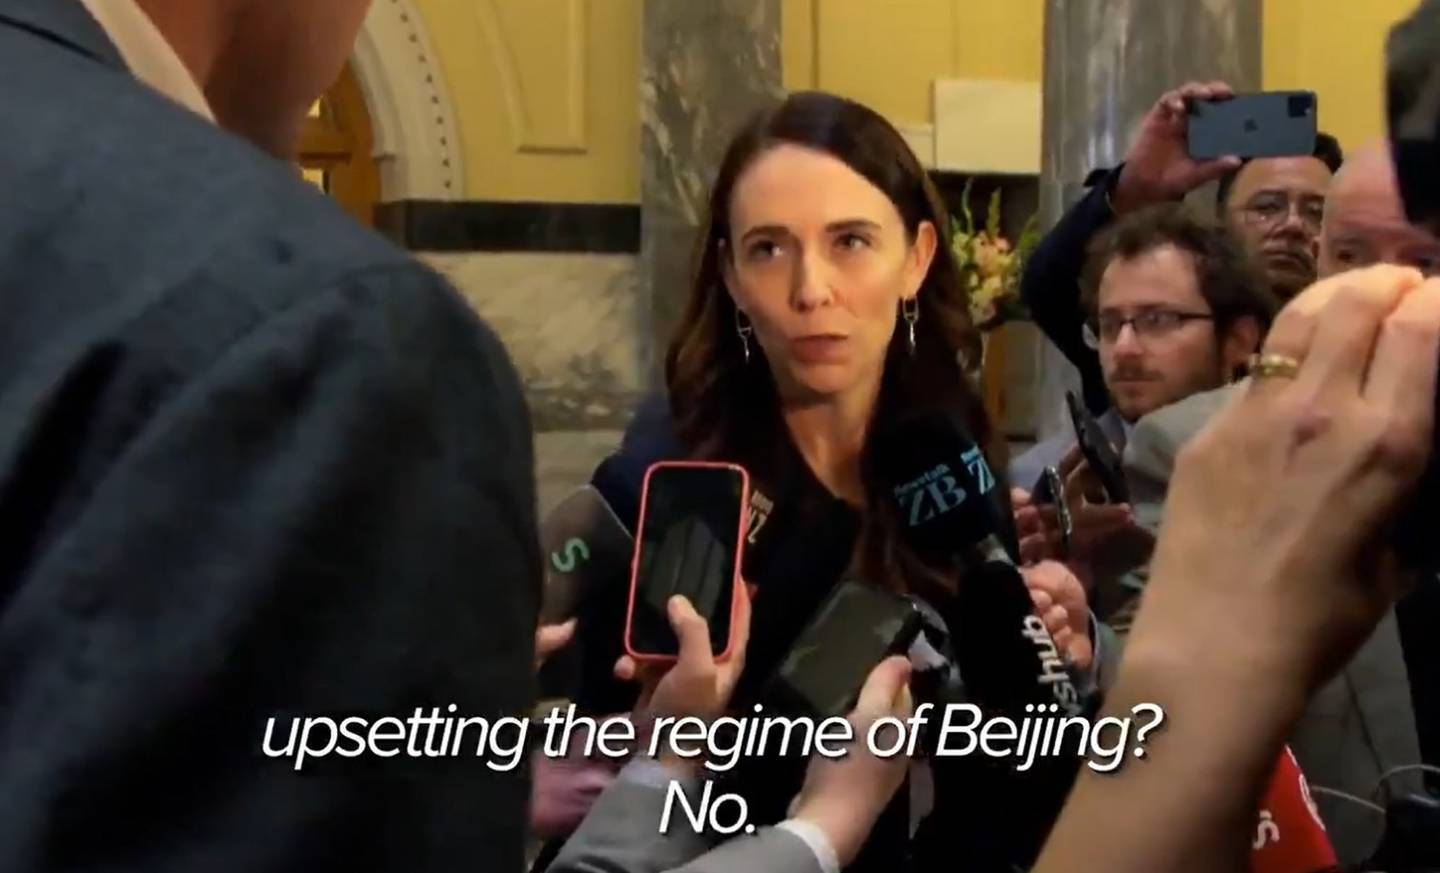 Australian journalist Tom Steinfort joined the media scrum at Parliament to lob questions at Jacinda Ardern.